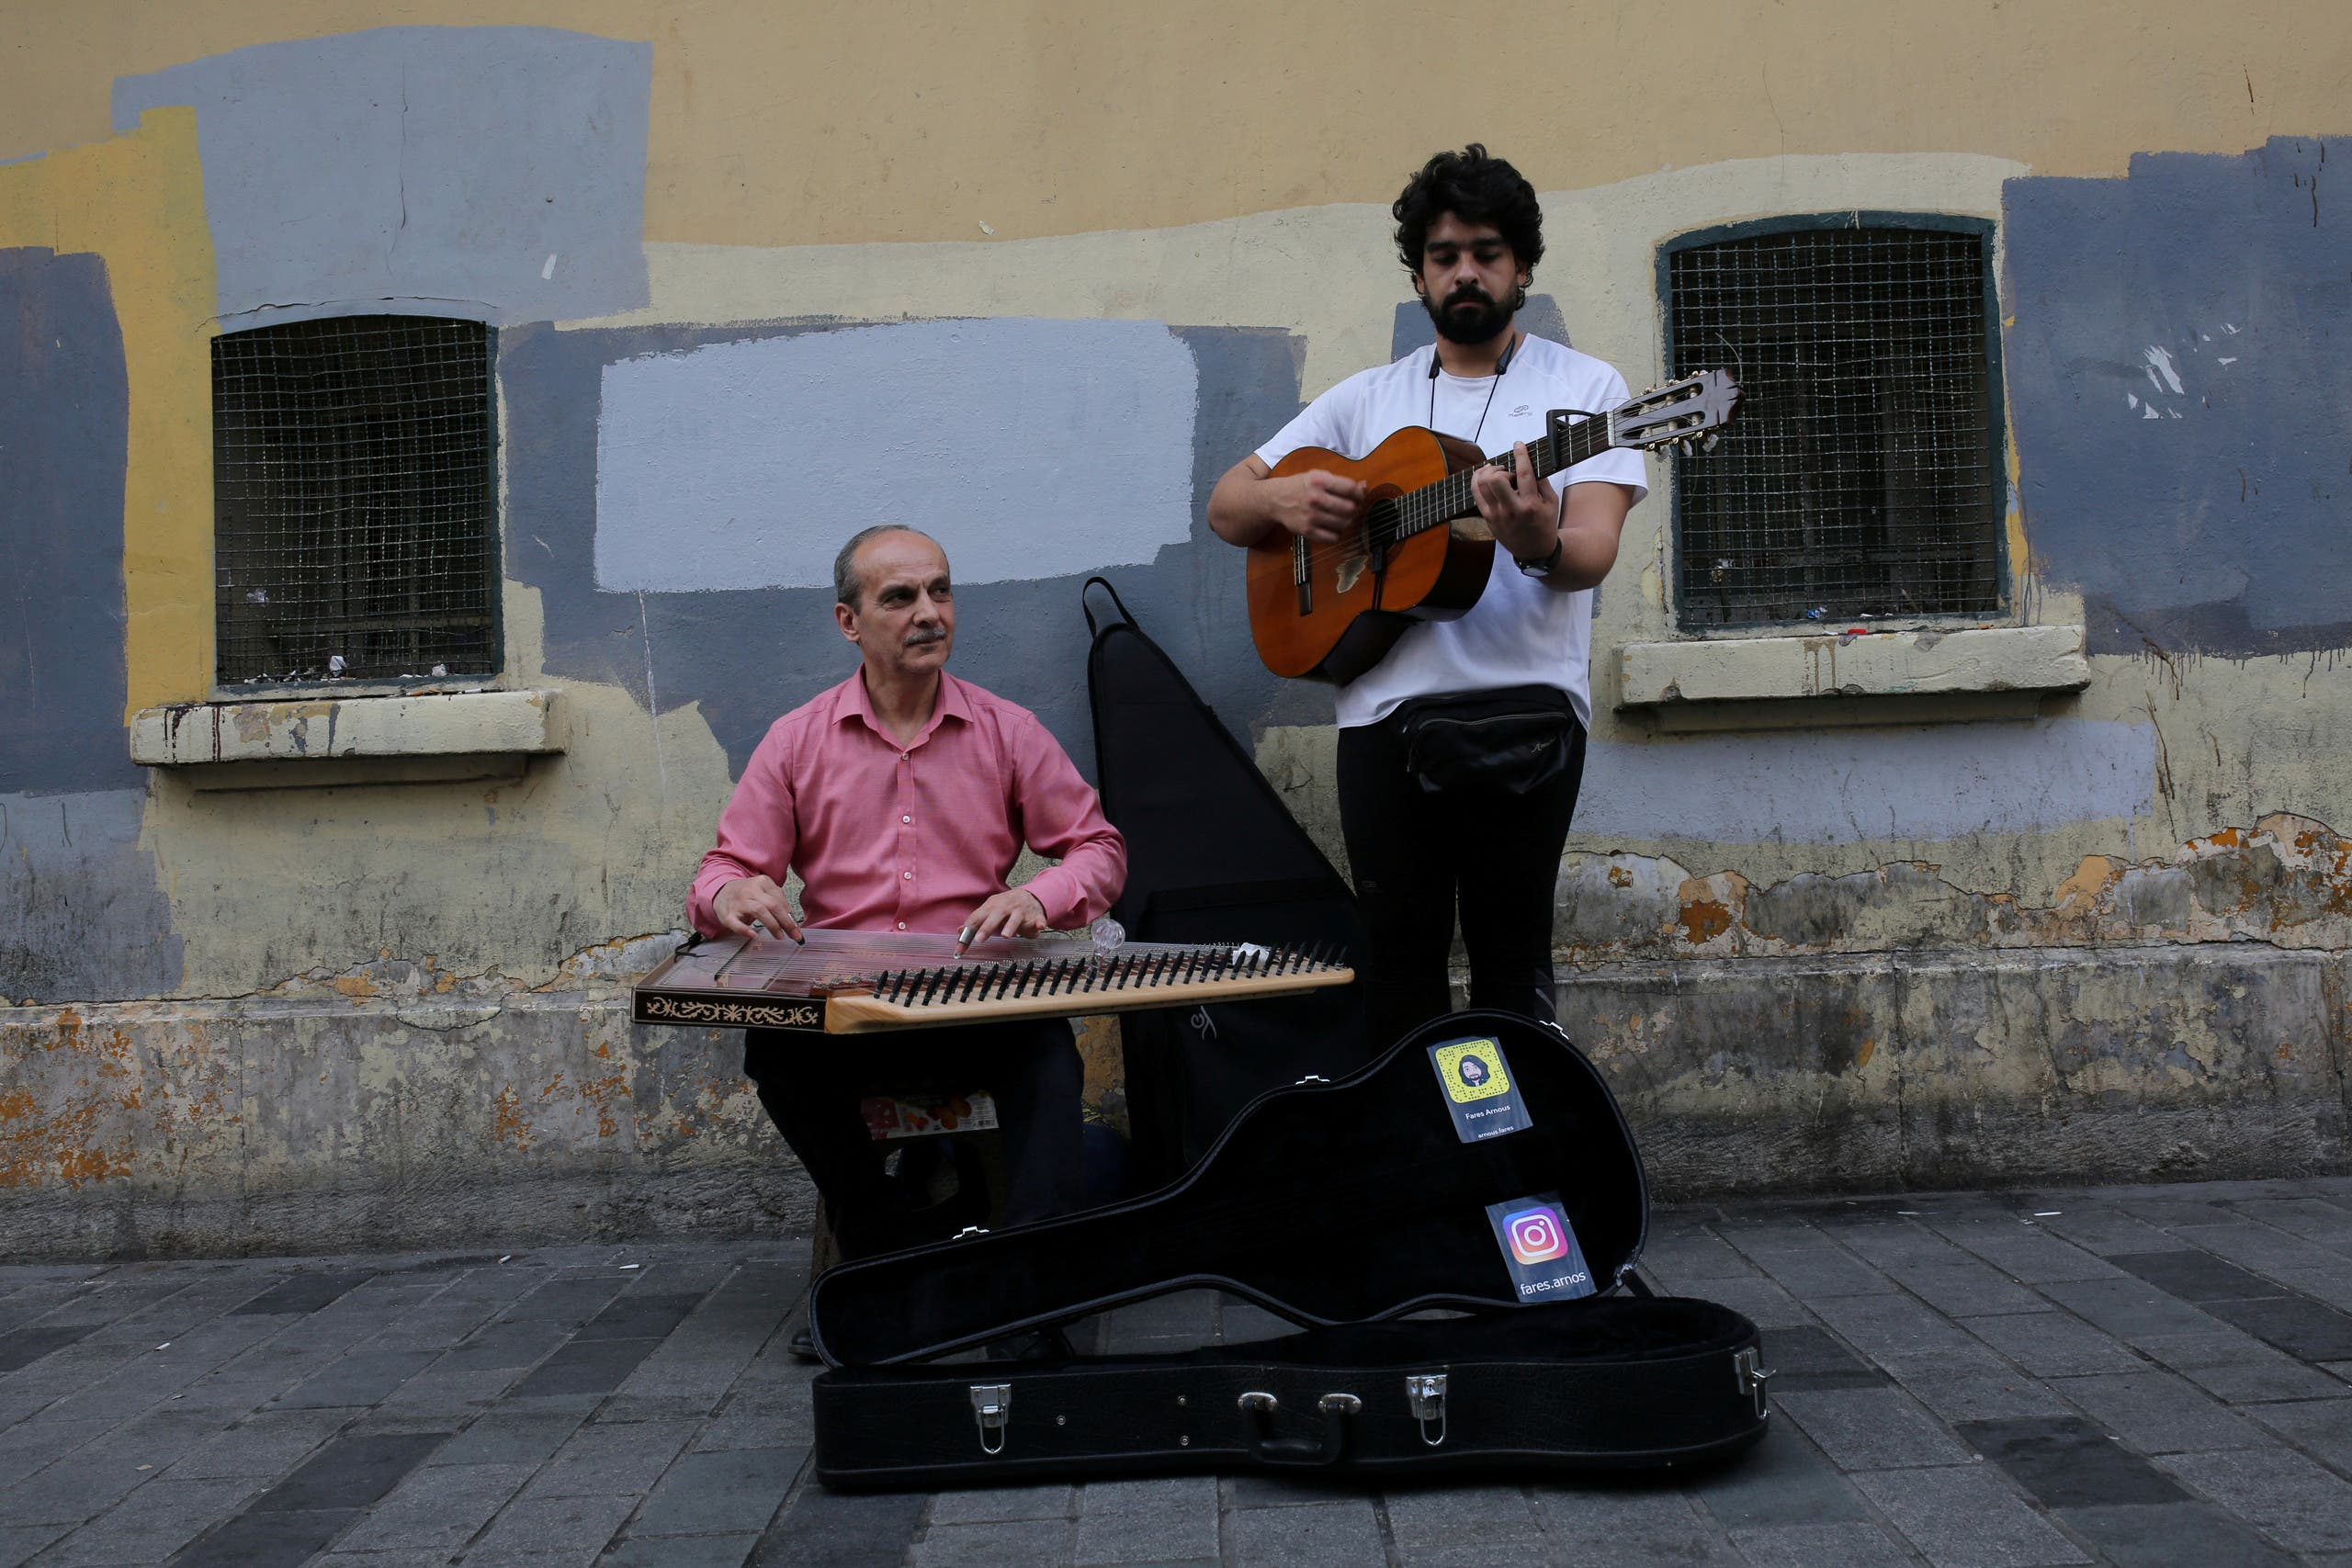 Syrian musicians, refugees from Aleppo, perform in central Istanbul, Turkey, June 20, 2019. (Reuters)